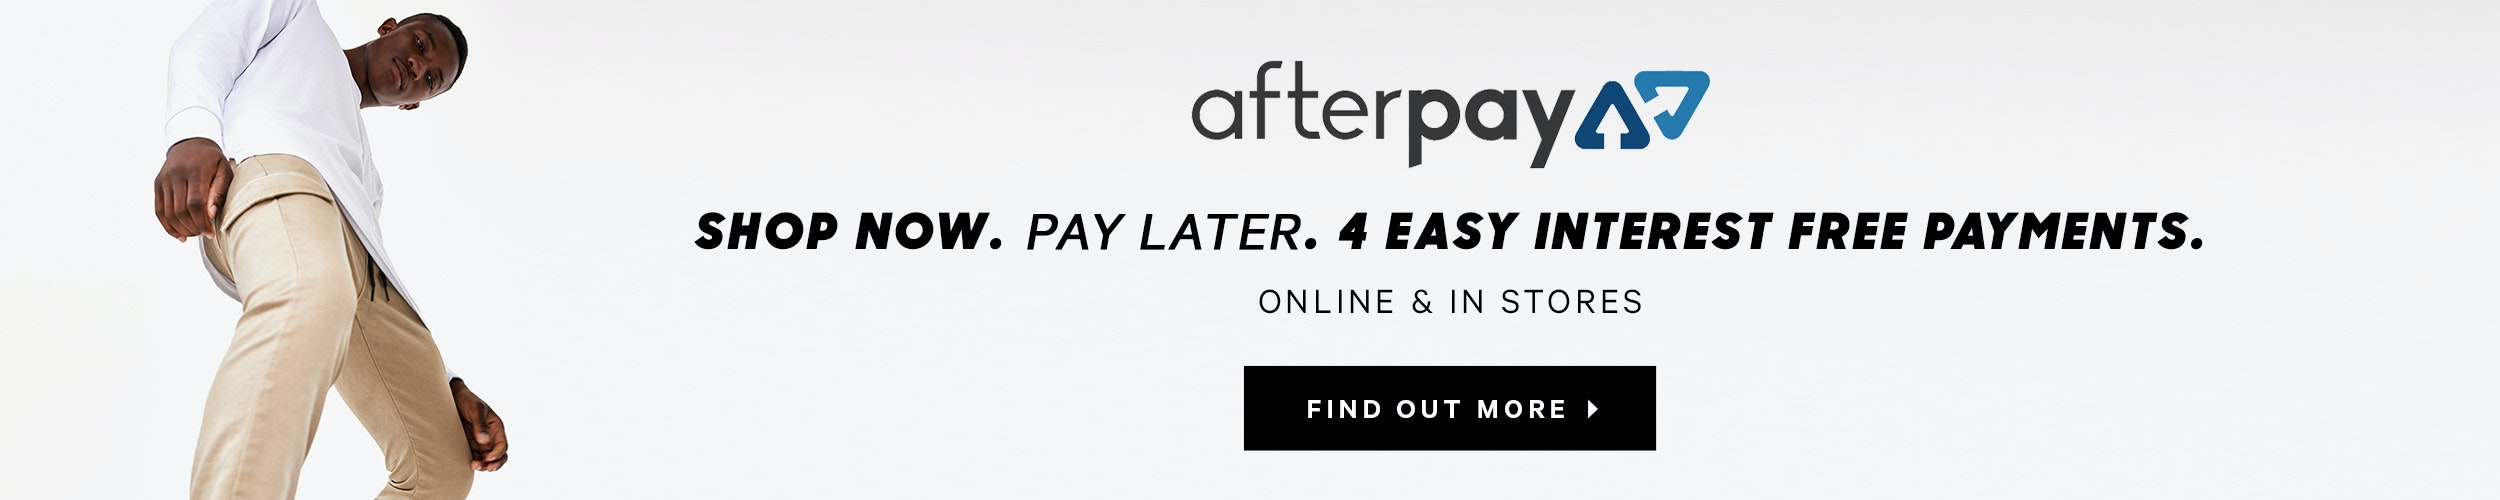 Afterpay: shop now at yd. and pay later using AfterPay